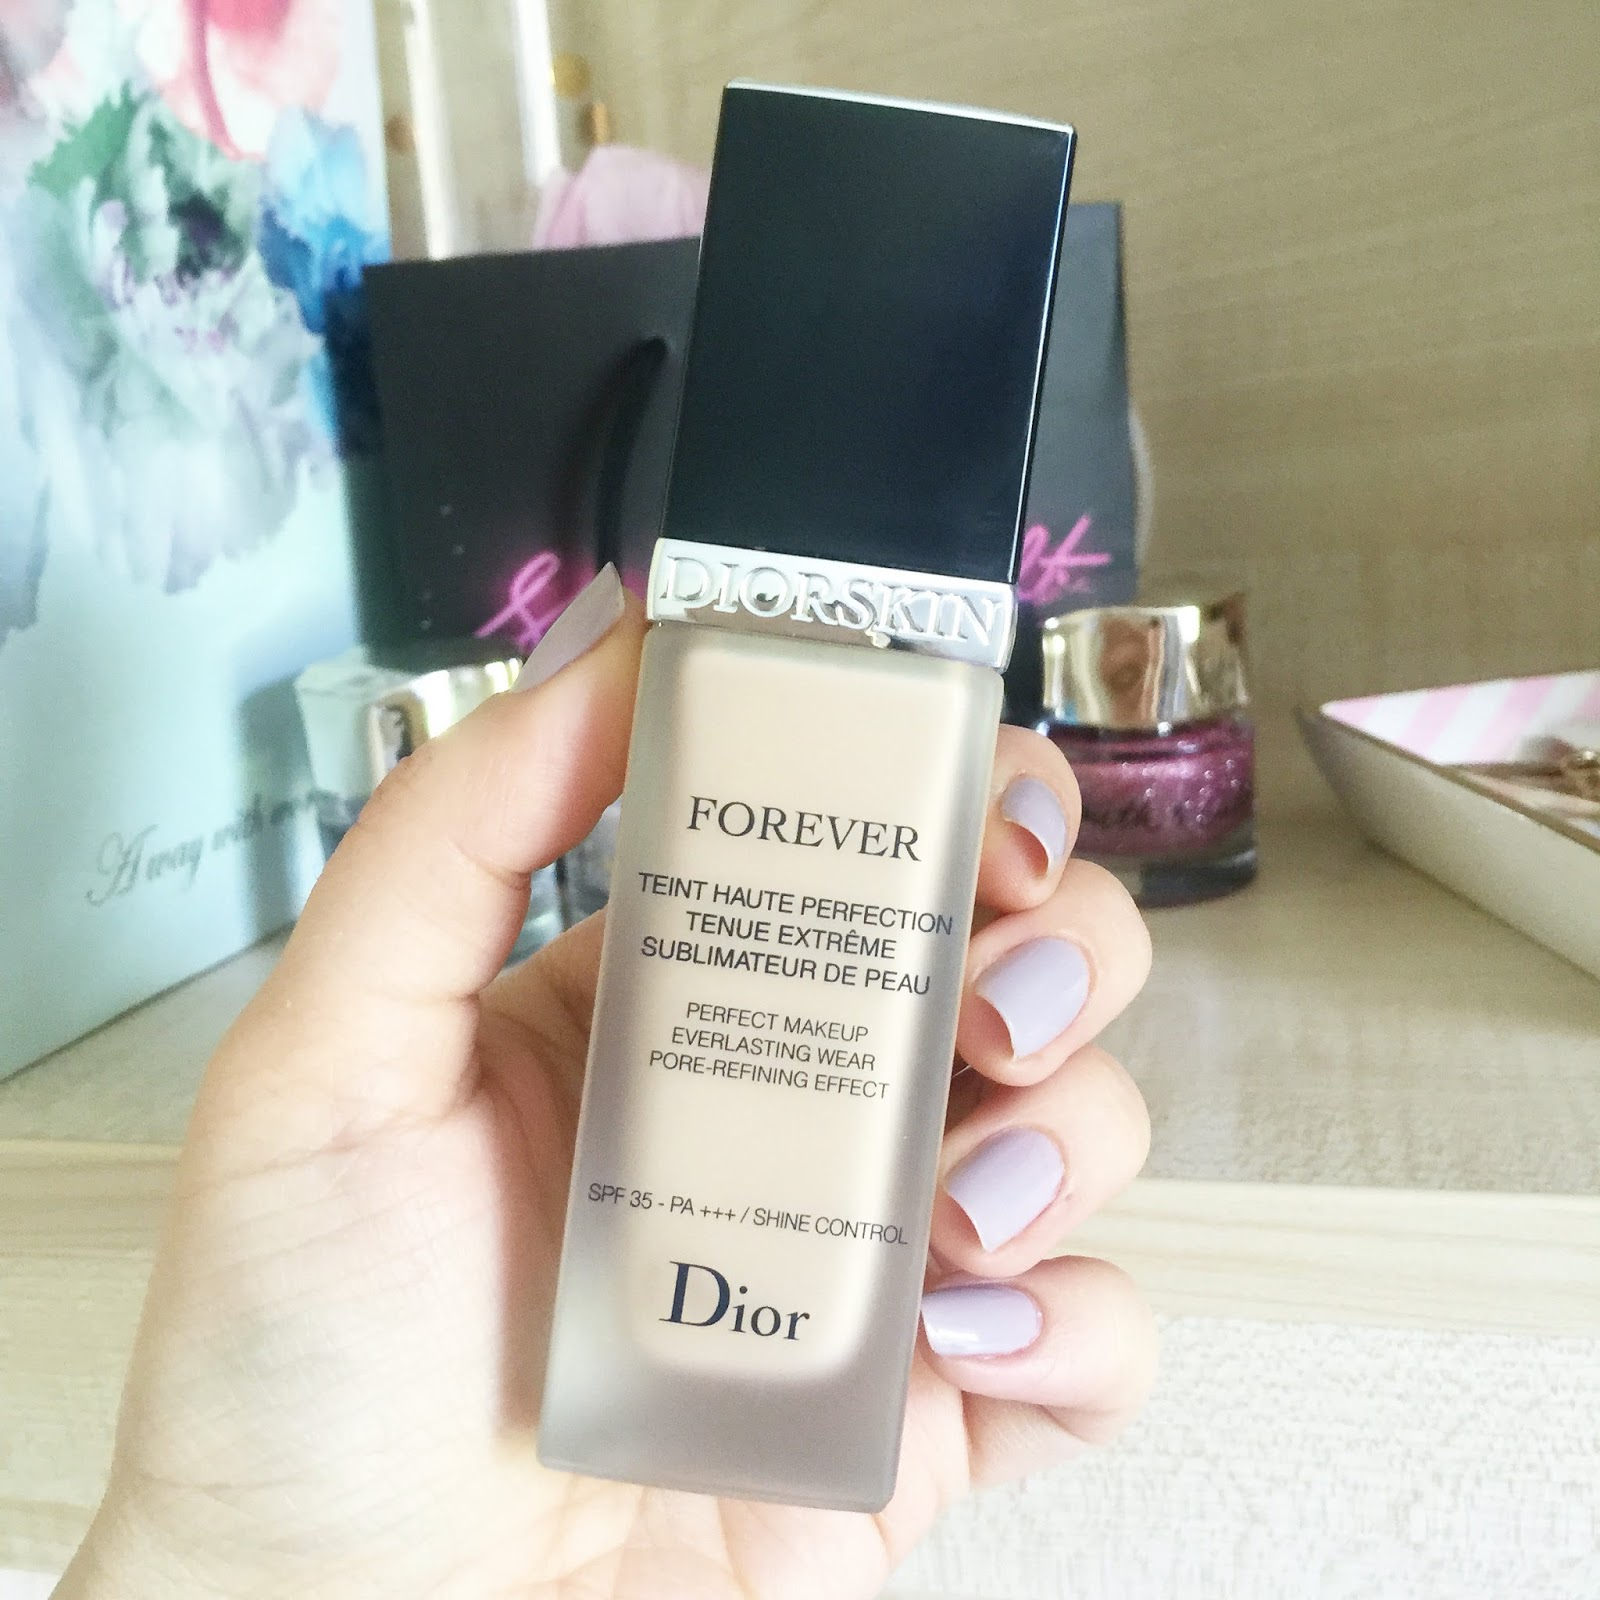 Dior Forever Fluid Foundation Review